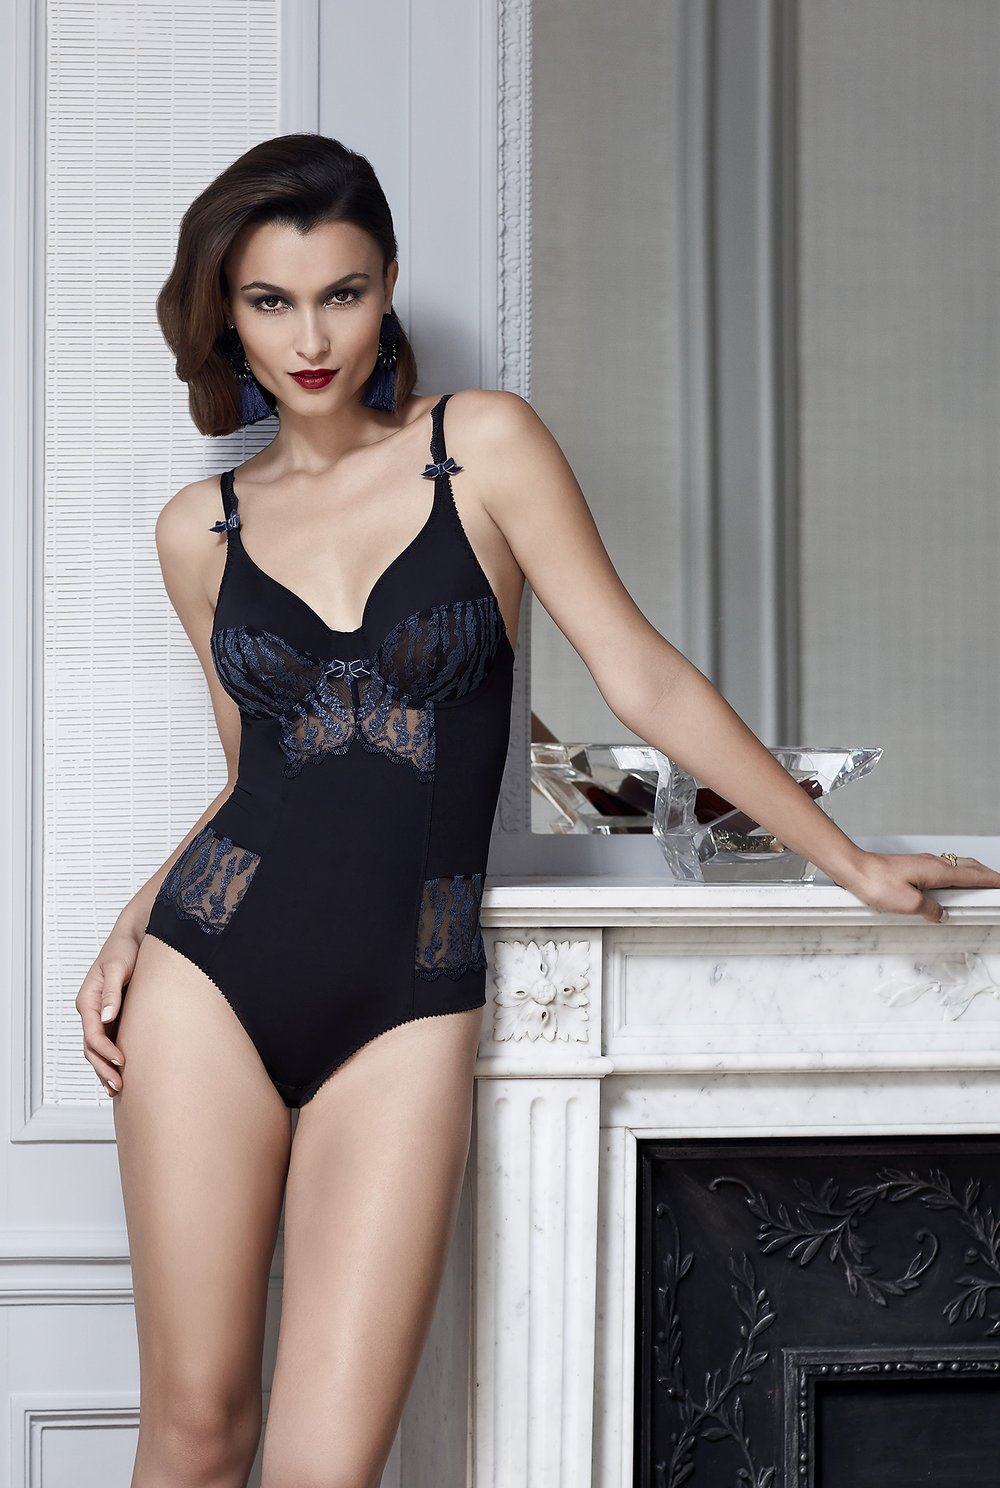 Passion Secrète   Body, sizes 90 to 105 b, c ; 85 to 105 d, e : $147